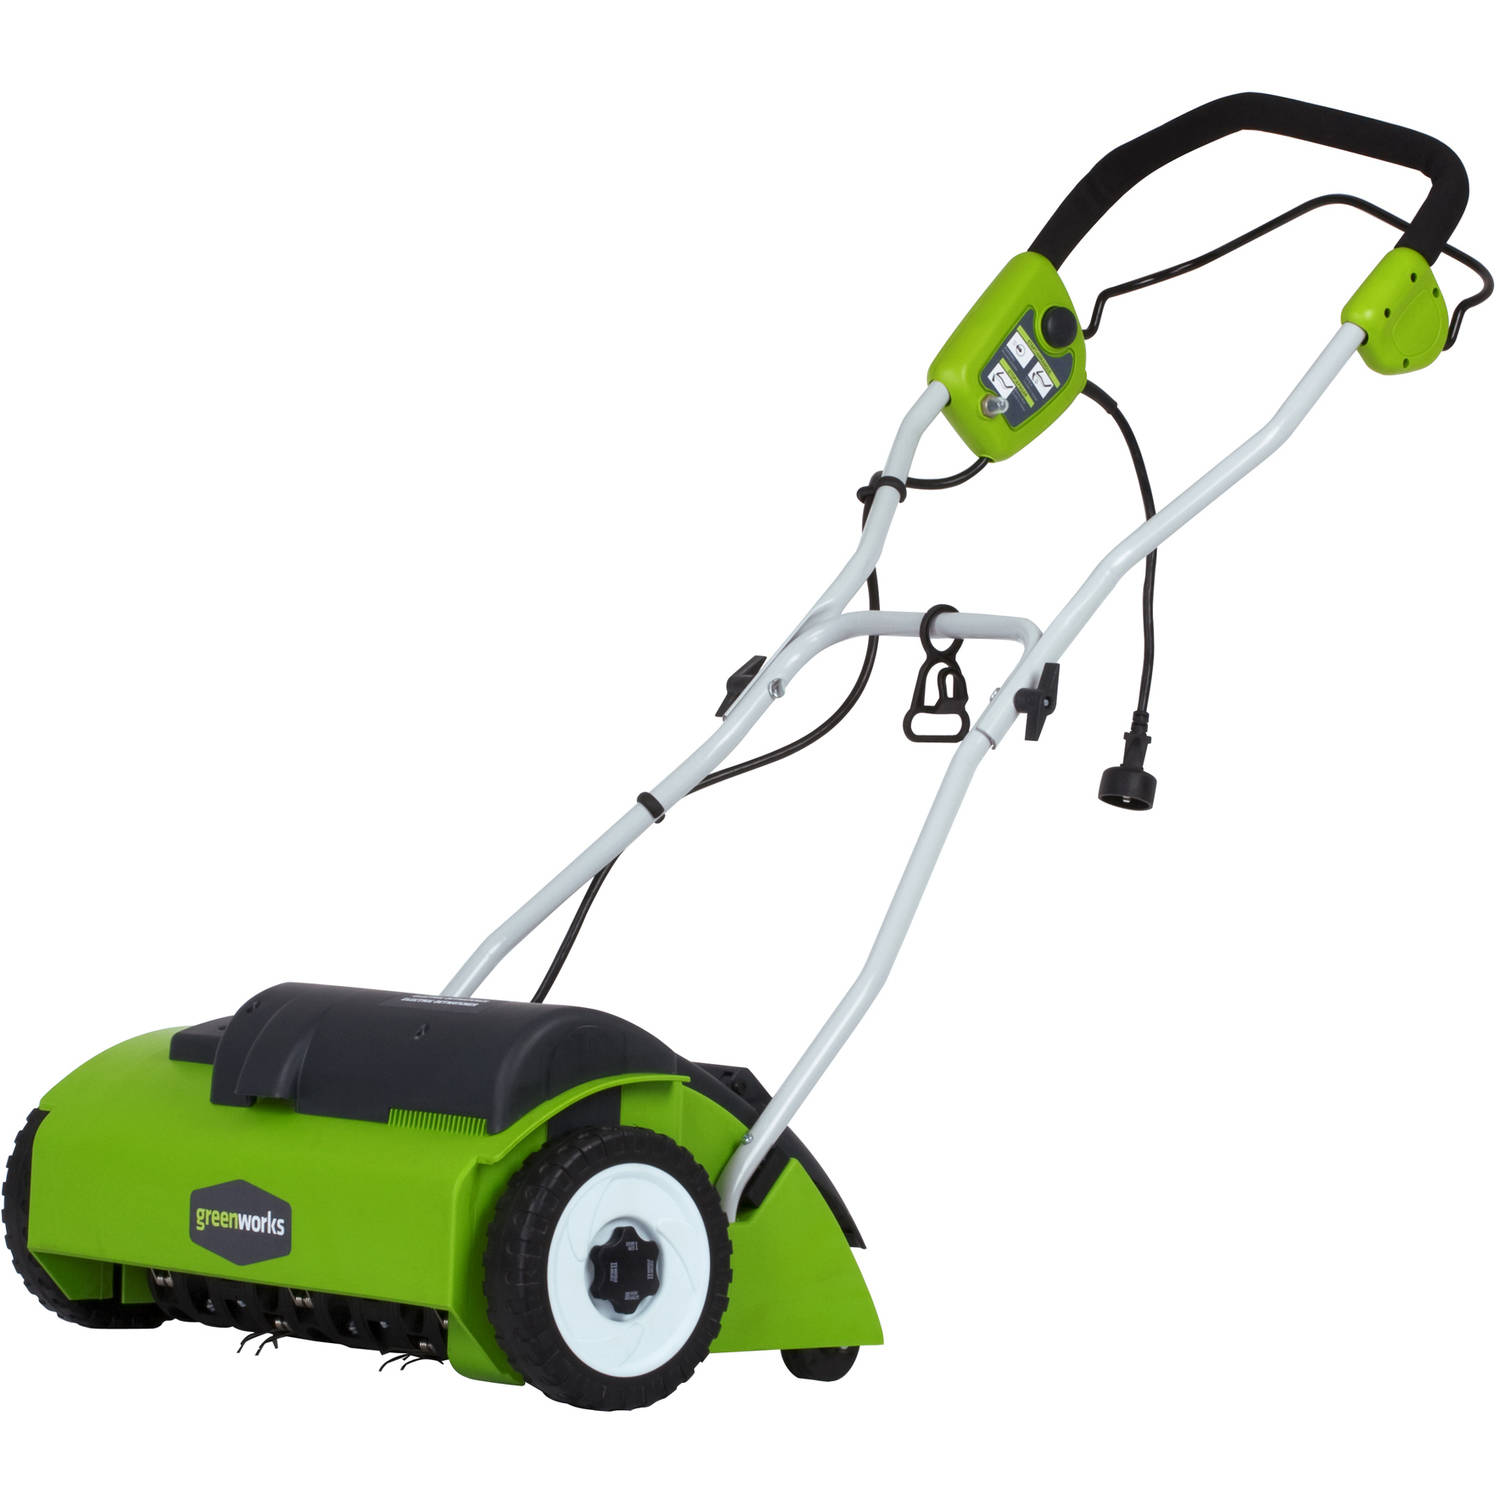 "Greenworks 10 amp 14"" Electric Dethatcher, Green"